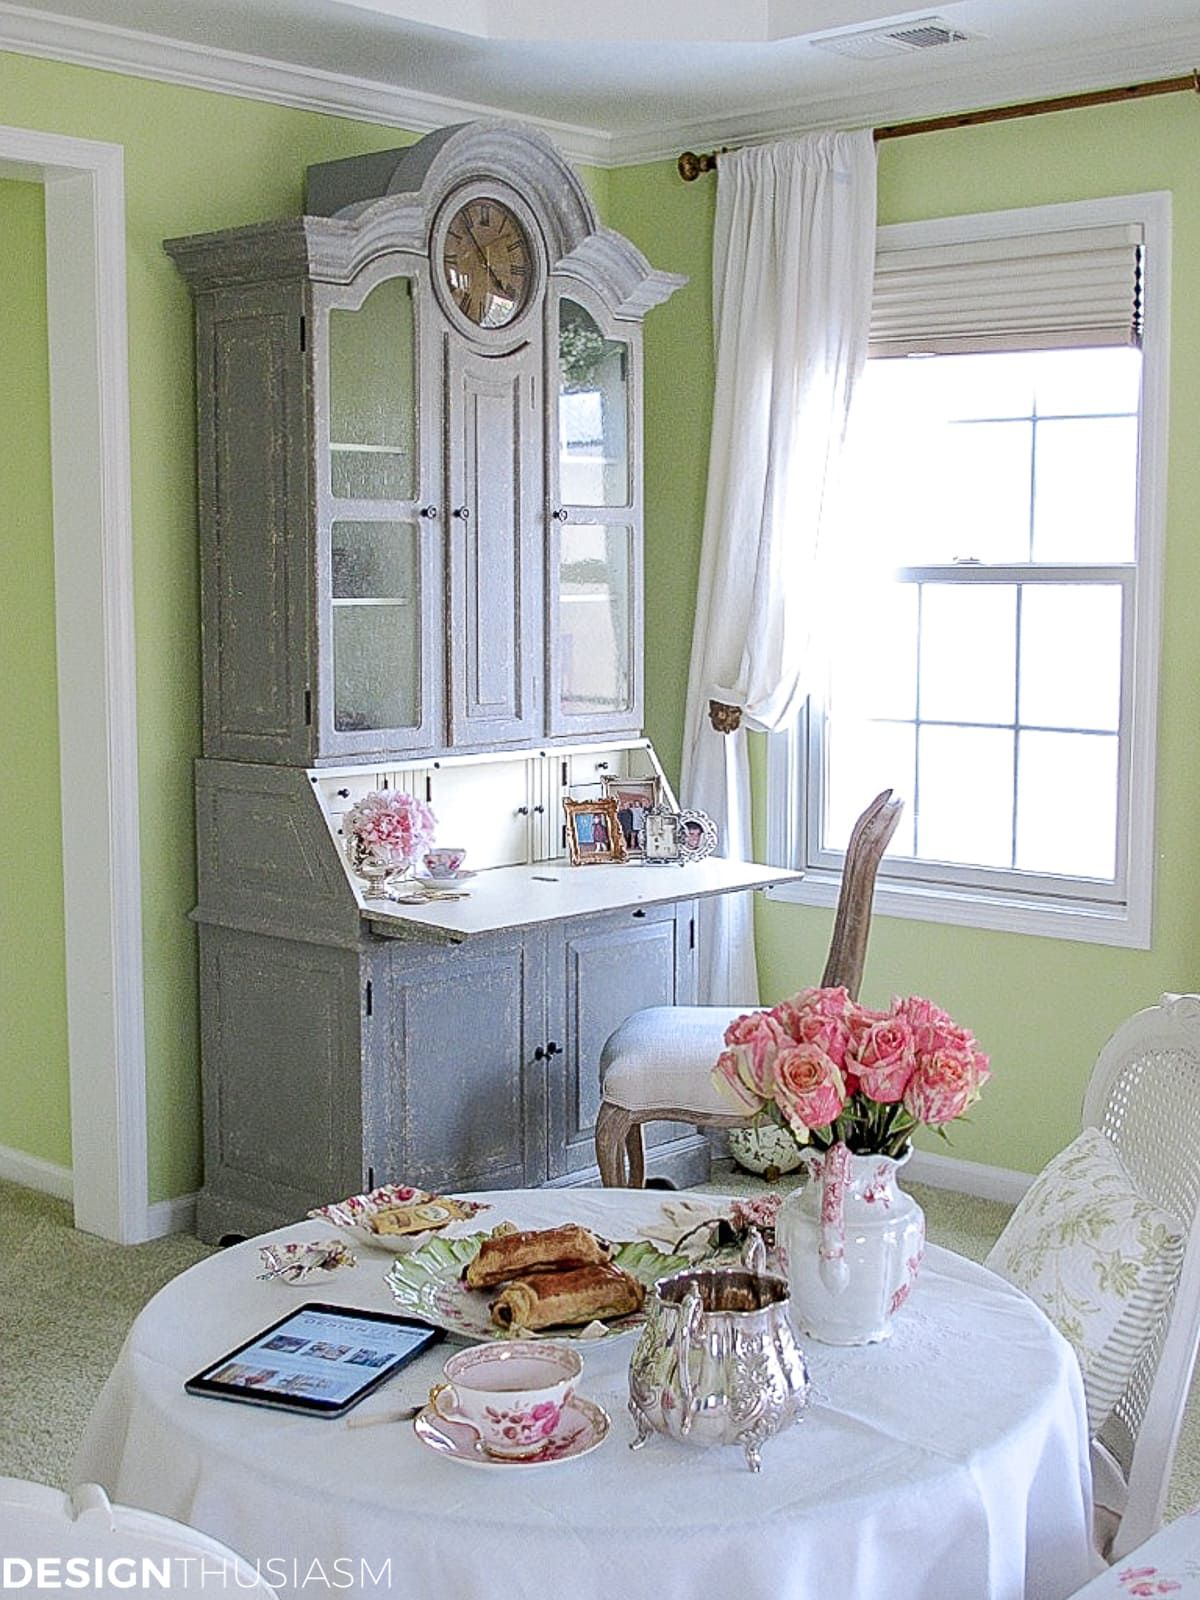 Master Bedroom Decor A French Style Breakfast Nook in the